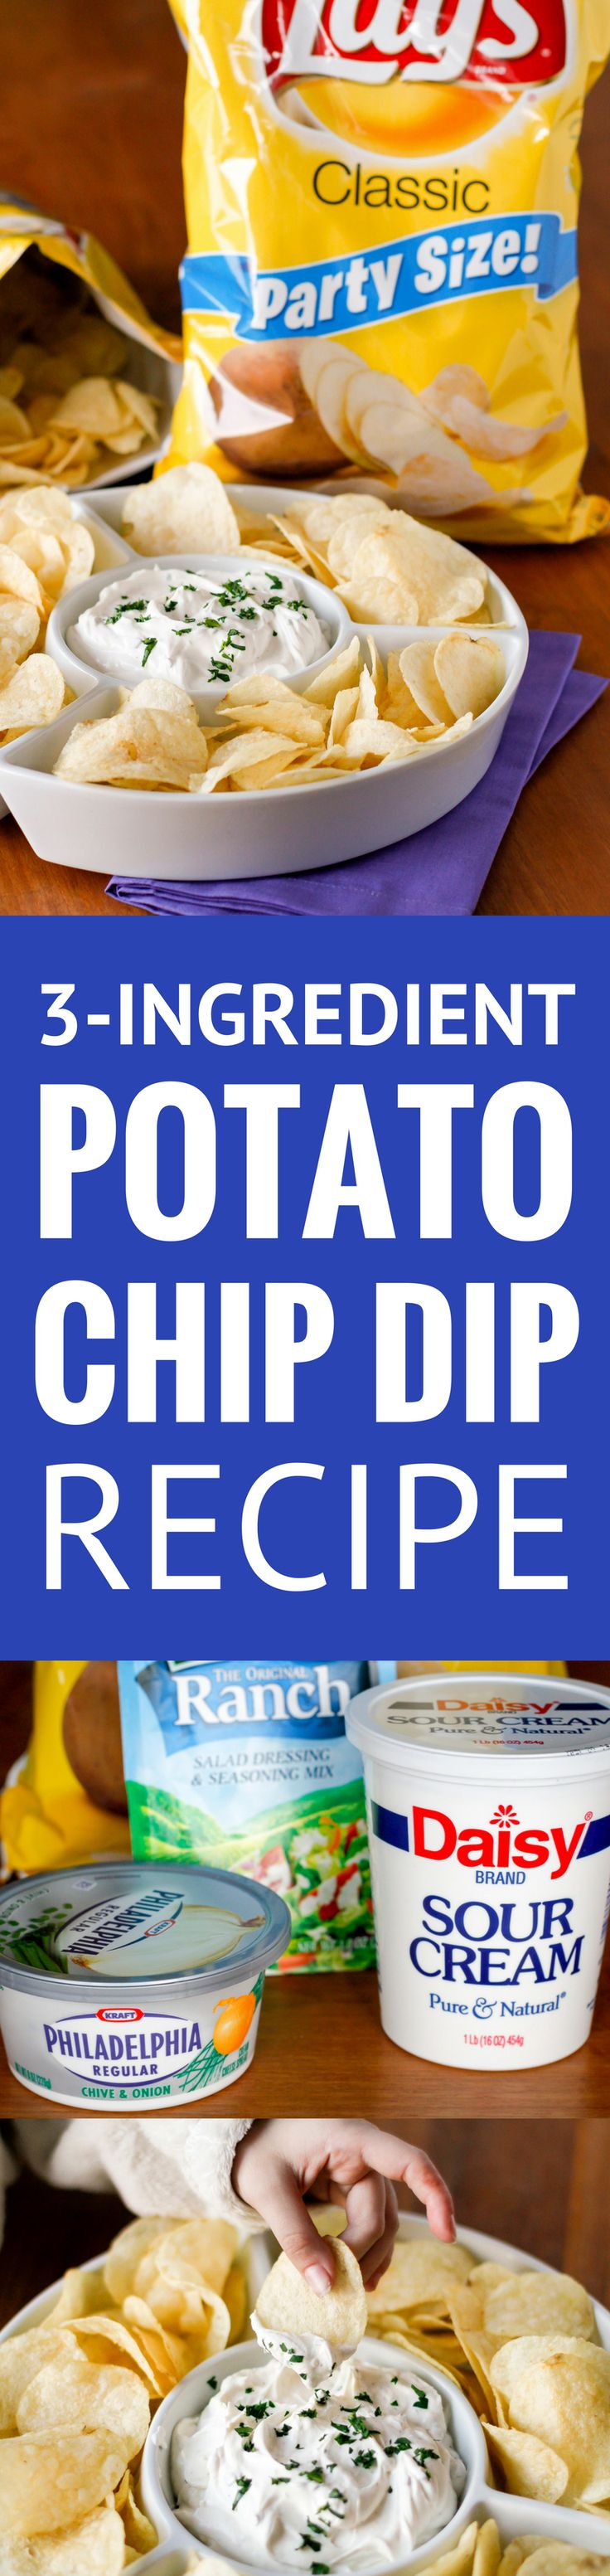 3-Ingredient Potato Chip Dip Recipe -- If you're a chips and dip junkie, you're going to LOVE this out-of-this-world 3-ingredient chip dip recipe... Perfect for tailgating and more! | easy chip dip | potato chip dip | cold chip dip | homemade chip dip | best chip dip | chip dip for parties | find the recipe on unsophisticook.com #chips #chipdip #easyrecipes #partyrecipes